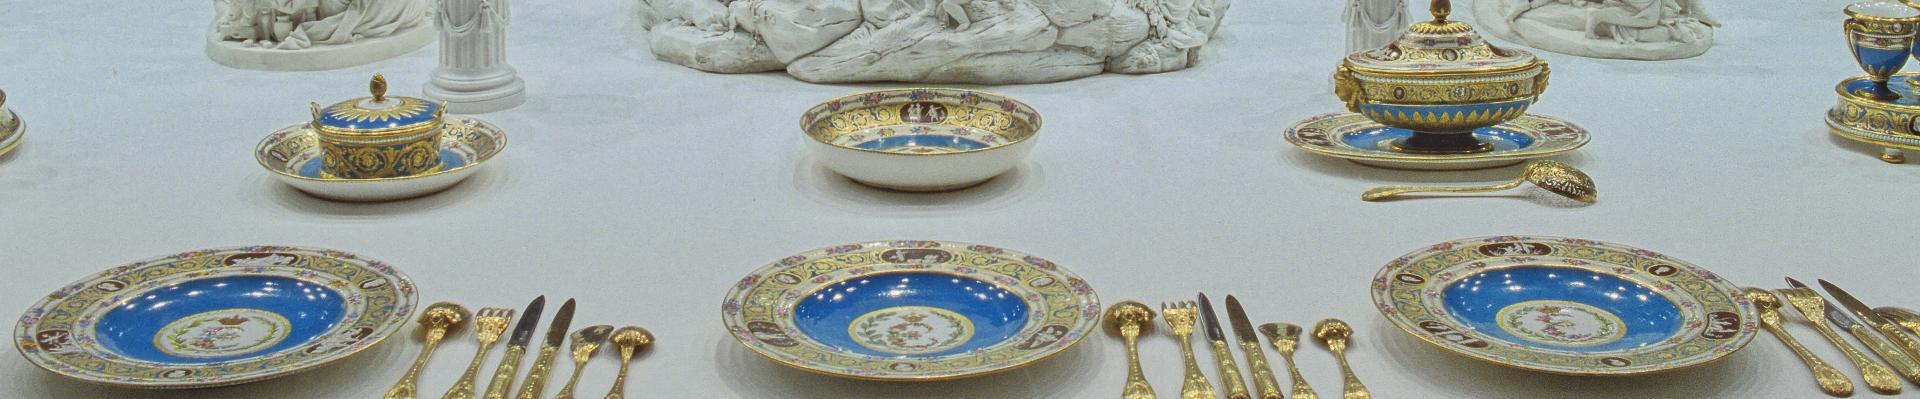 Royal tables palace of versailles - Art de la table nantes ...